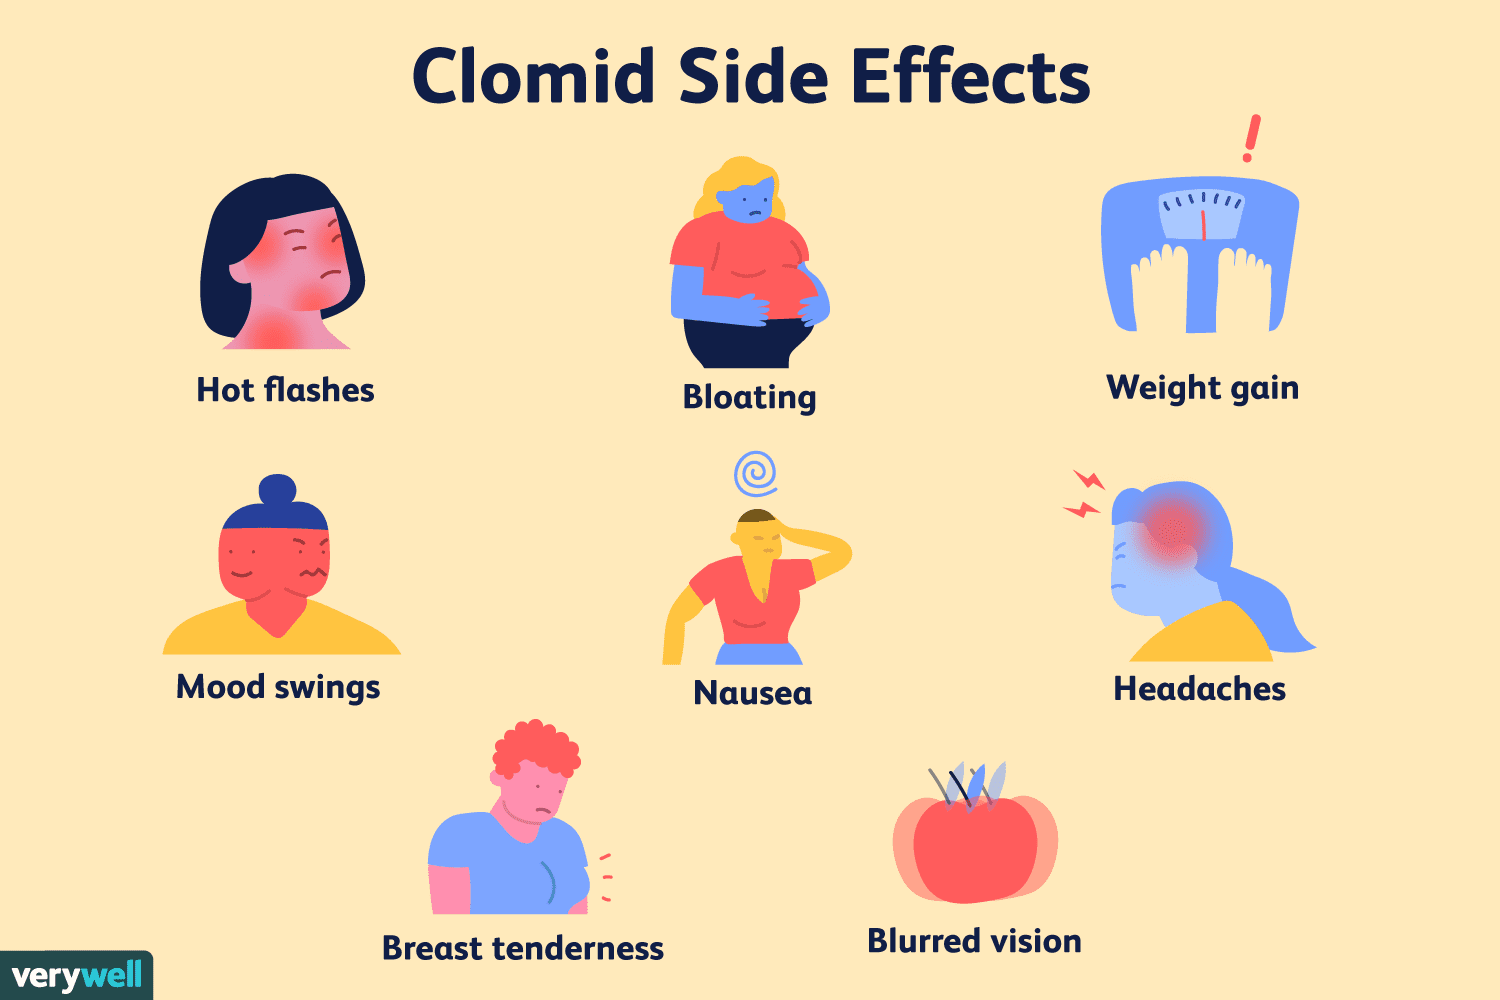 Clomid (Clomiphene) Side Effects and Risks